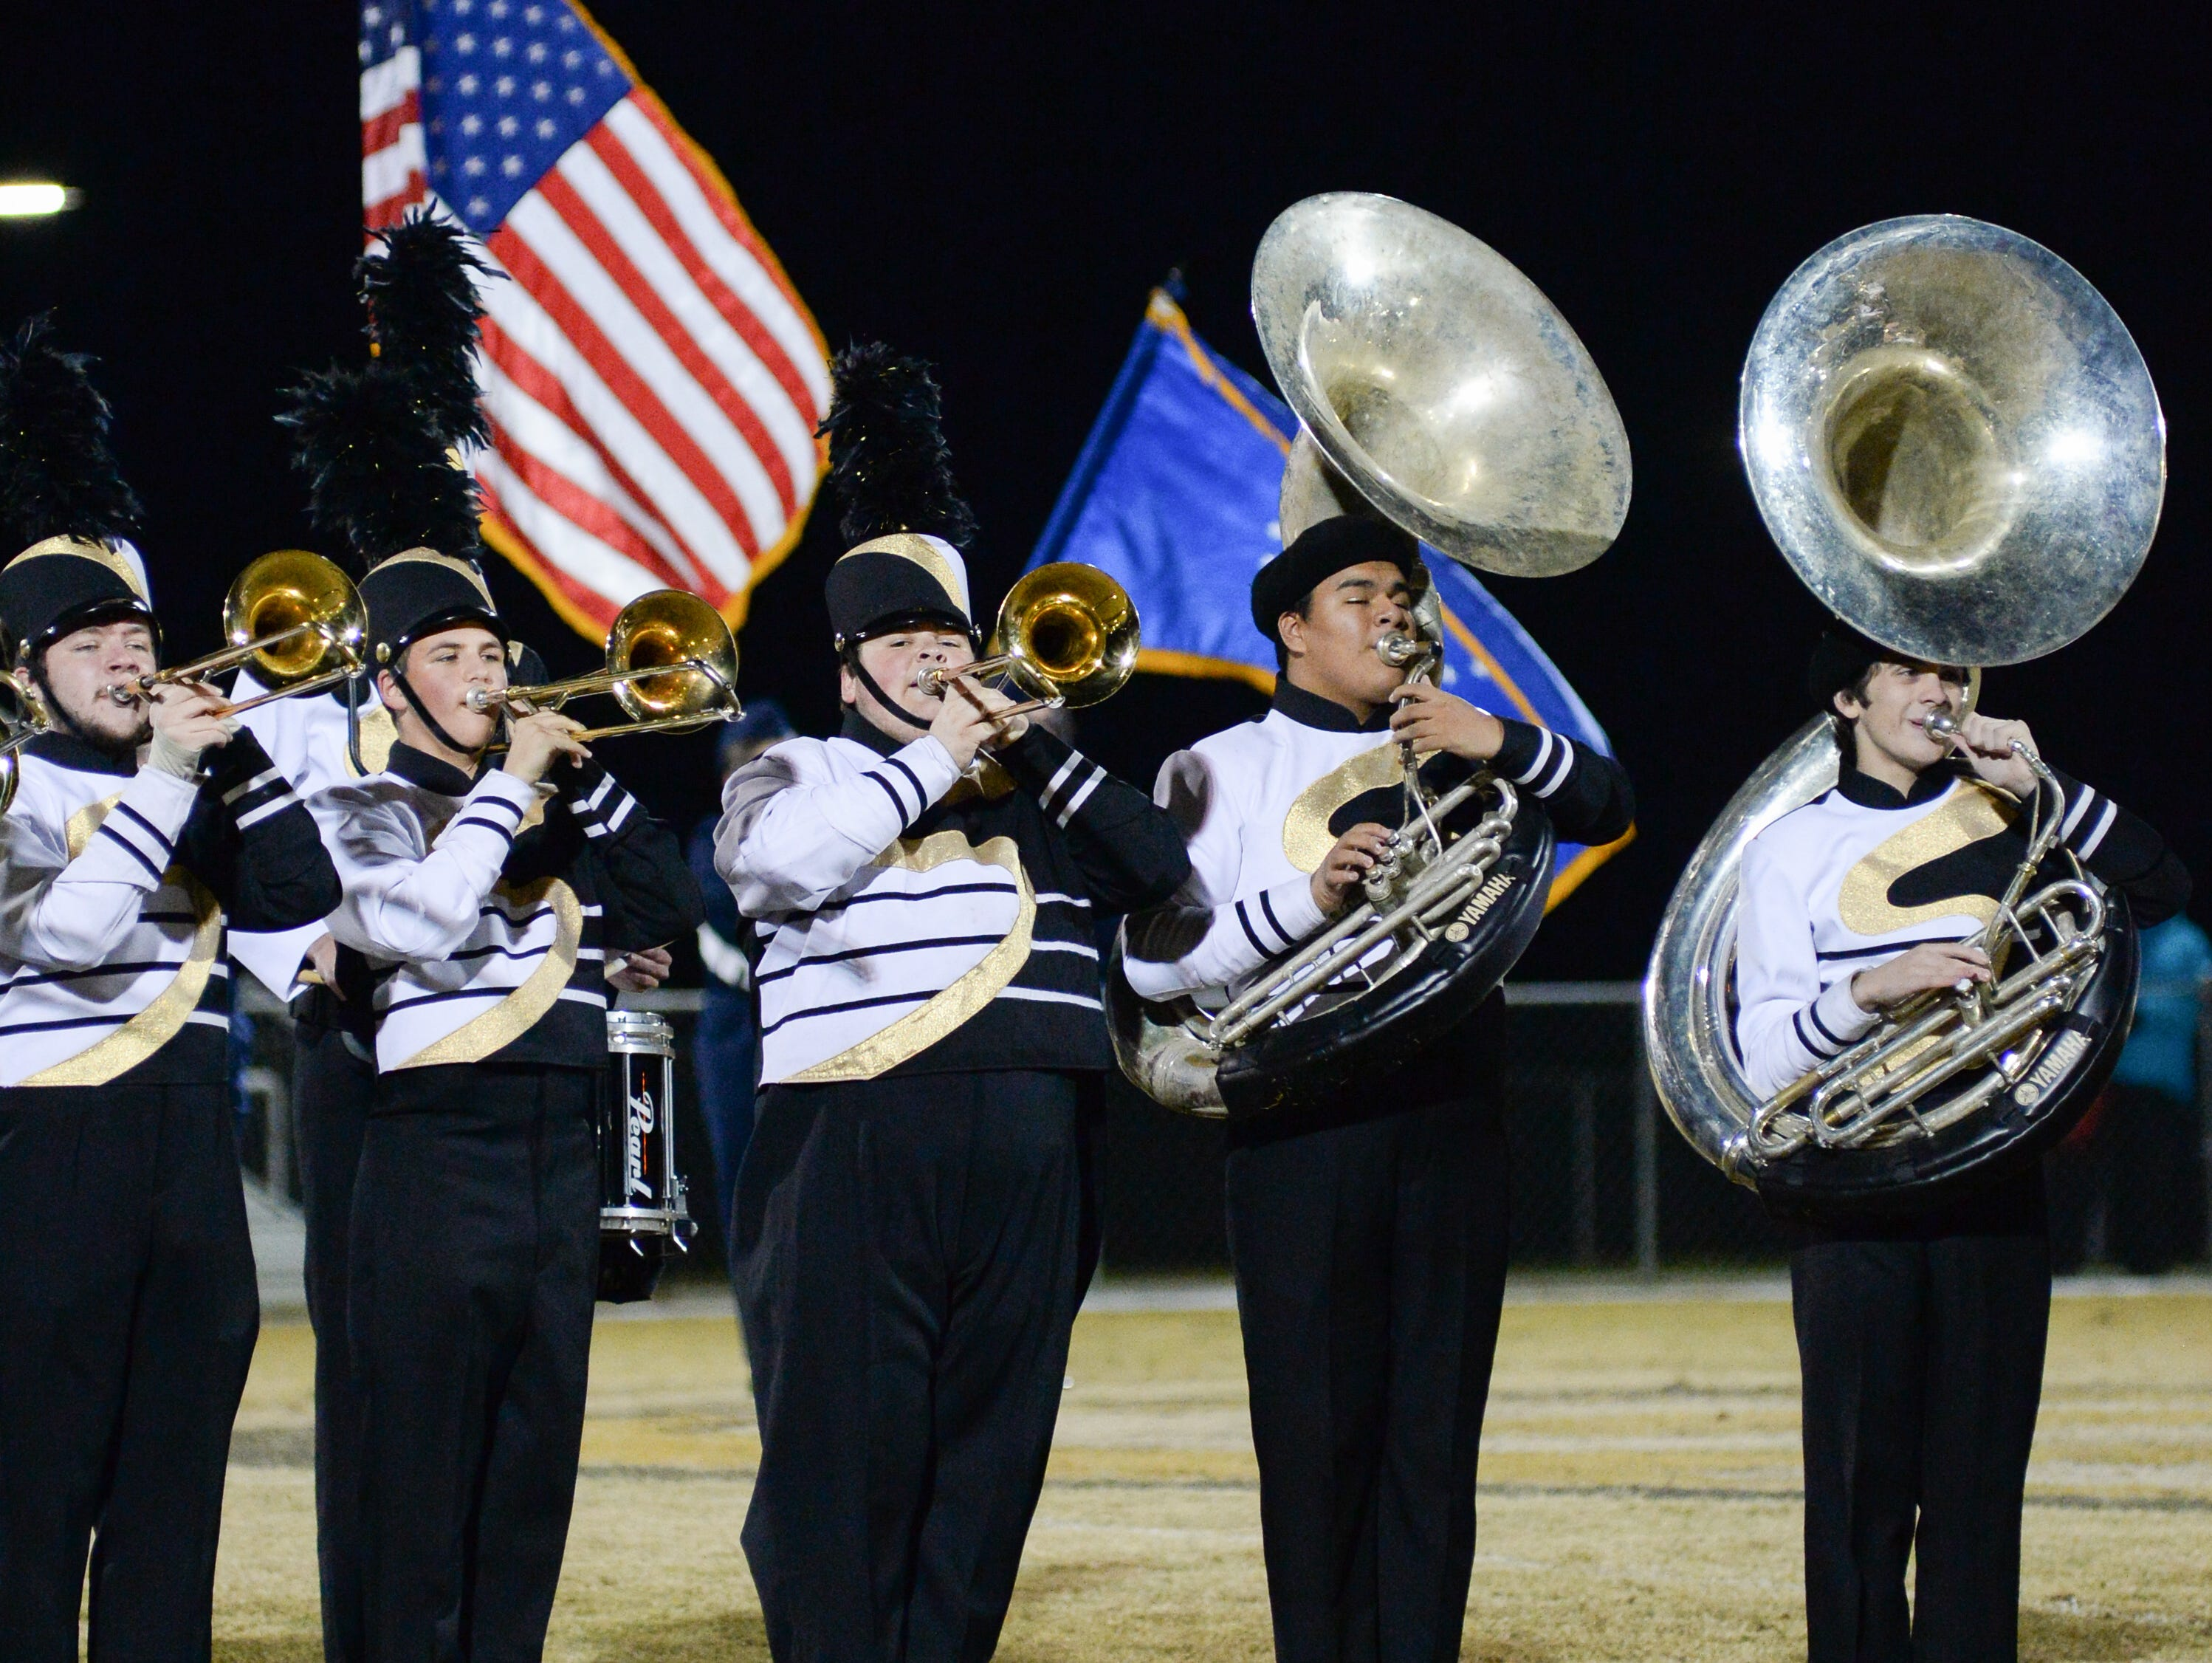 Springfield High School band performs the National Anthem before a game against South Side High School at Springfield High School on Friday, Nov. 9.